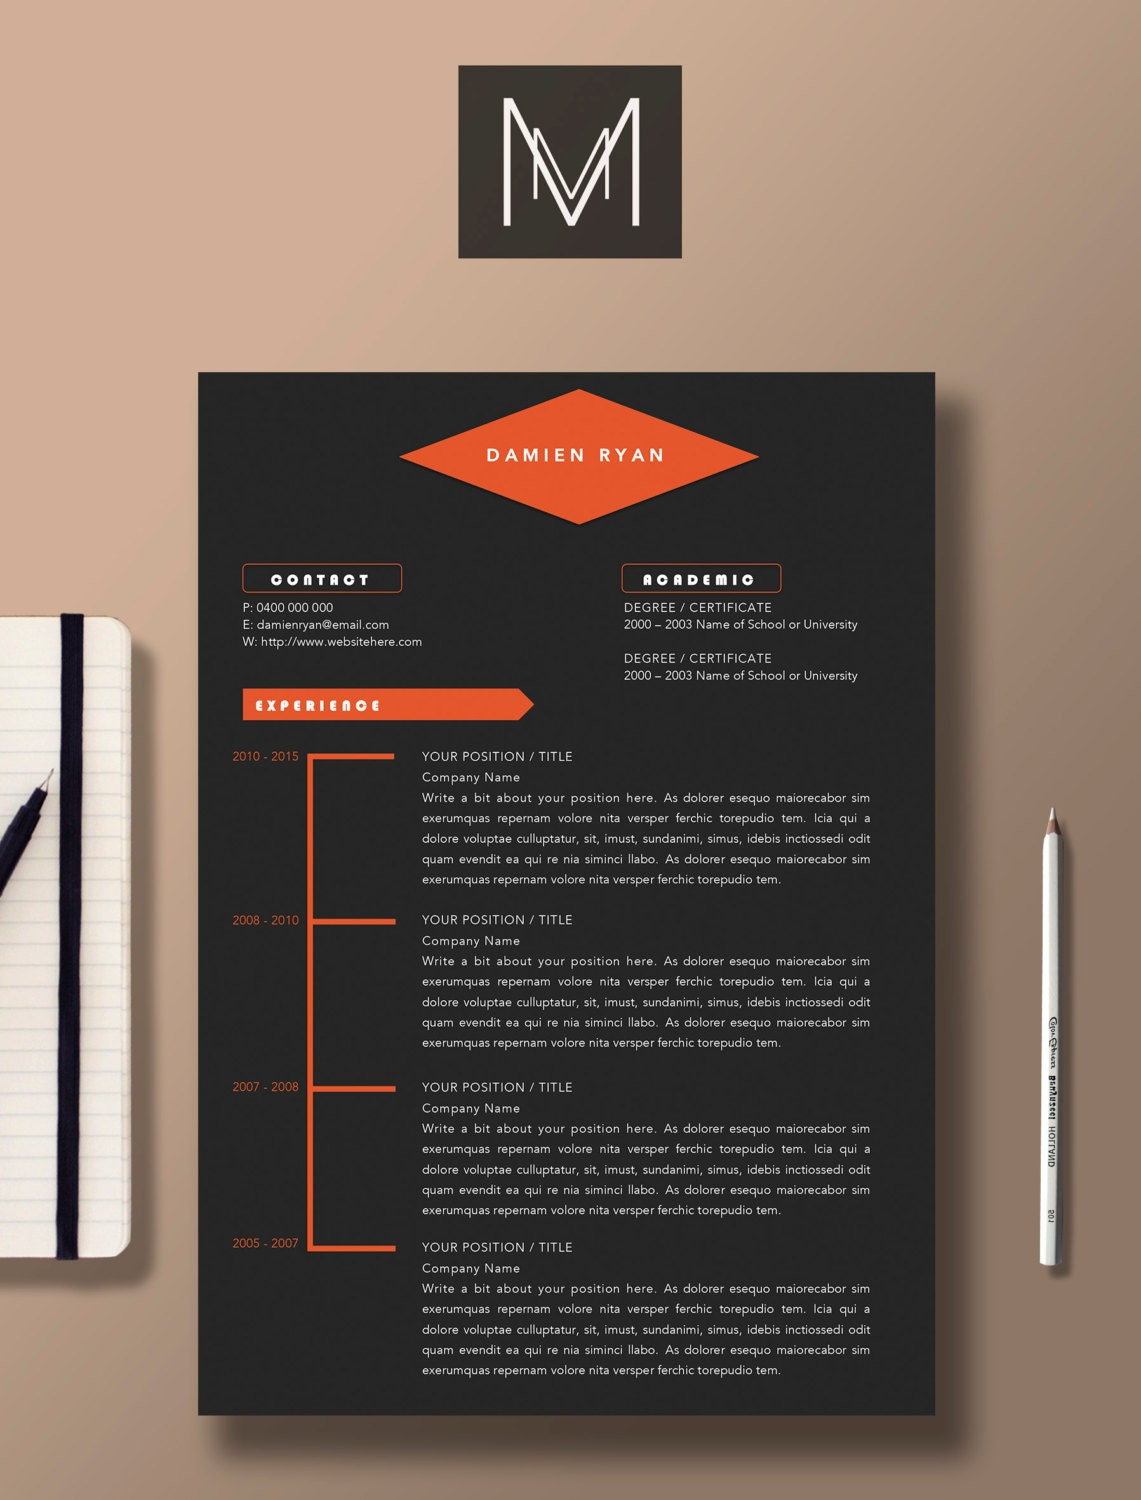 Cover Letter In Resume: Narrative Style Resume, Graphic Design Resume ...